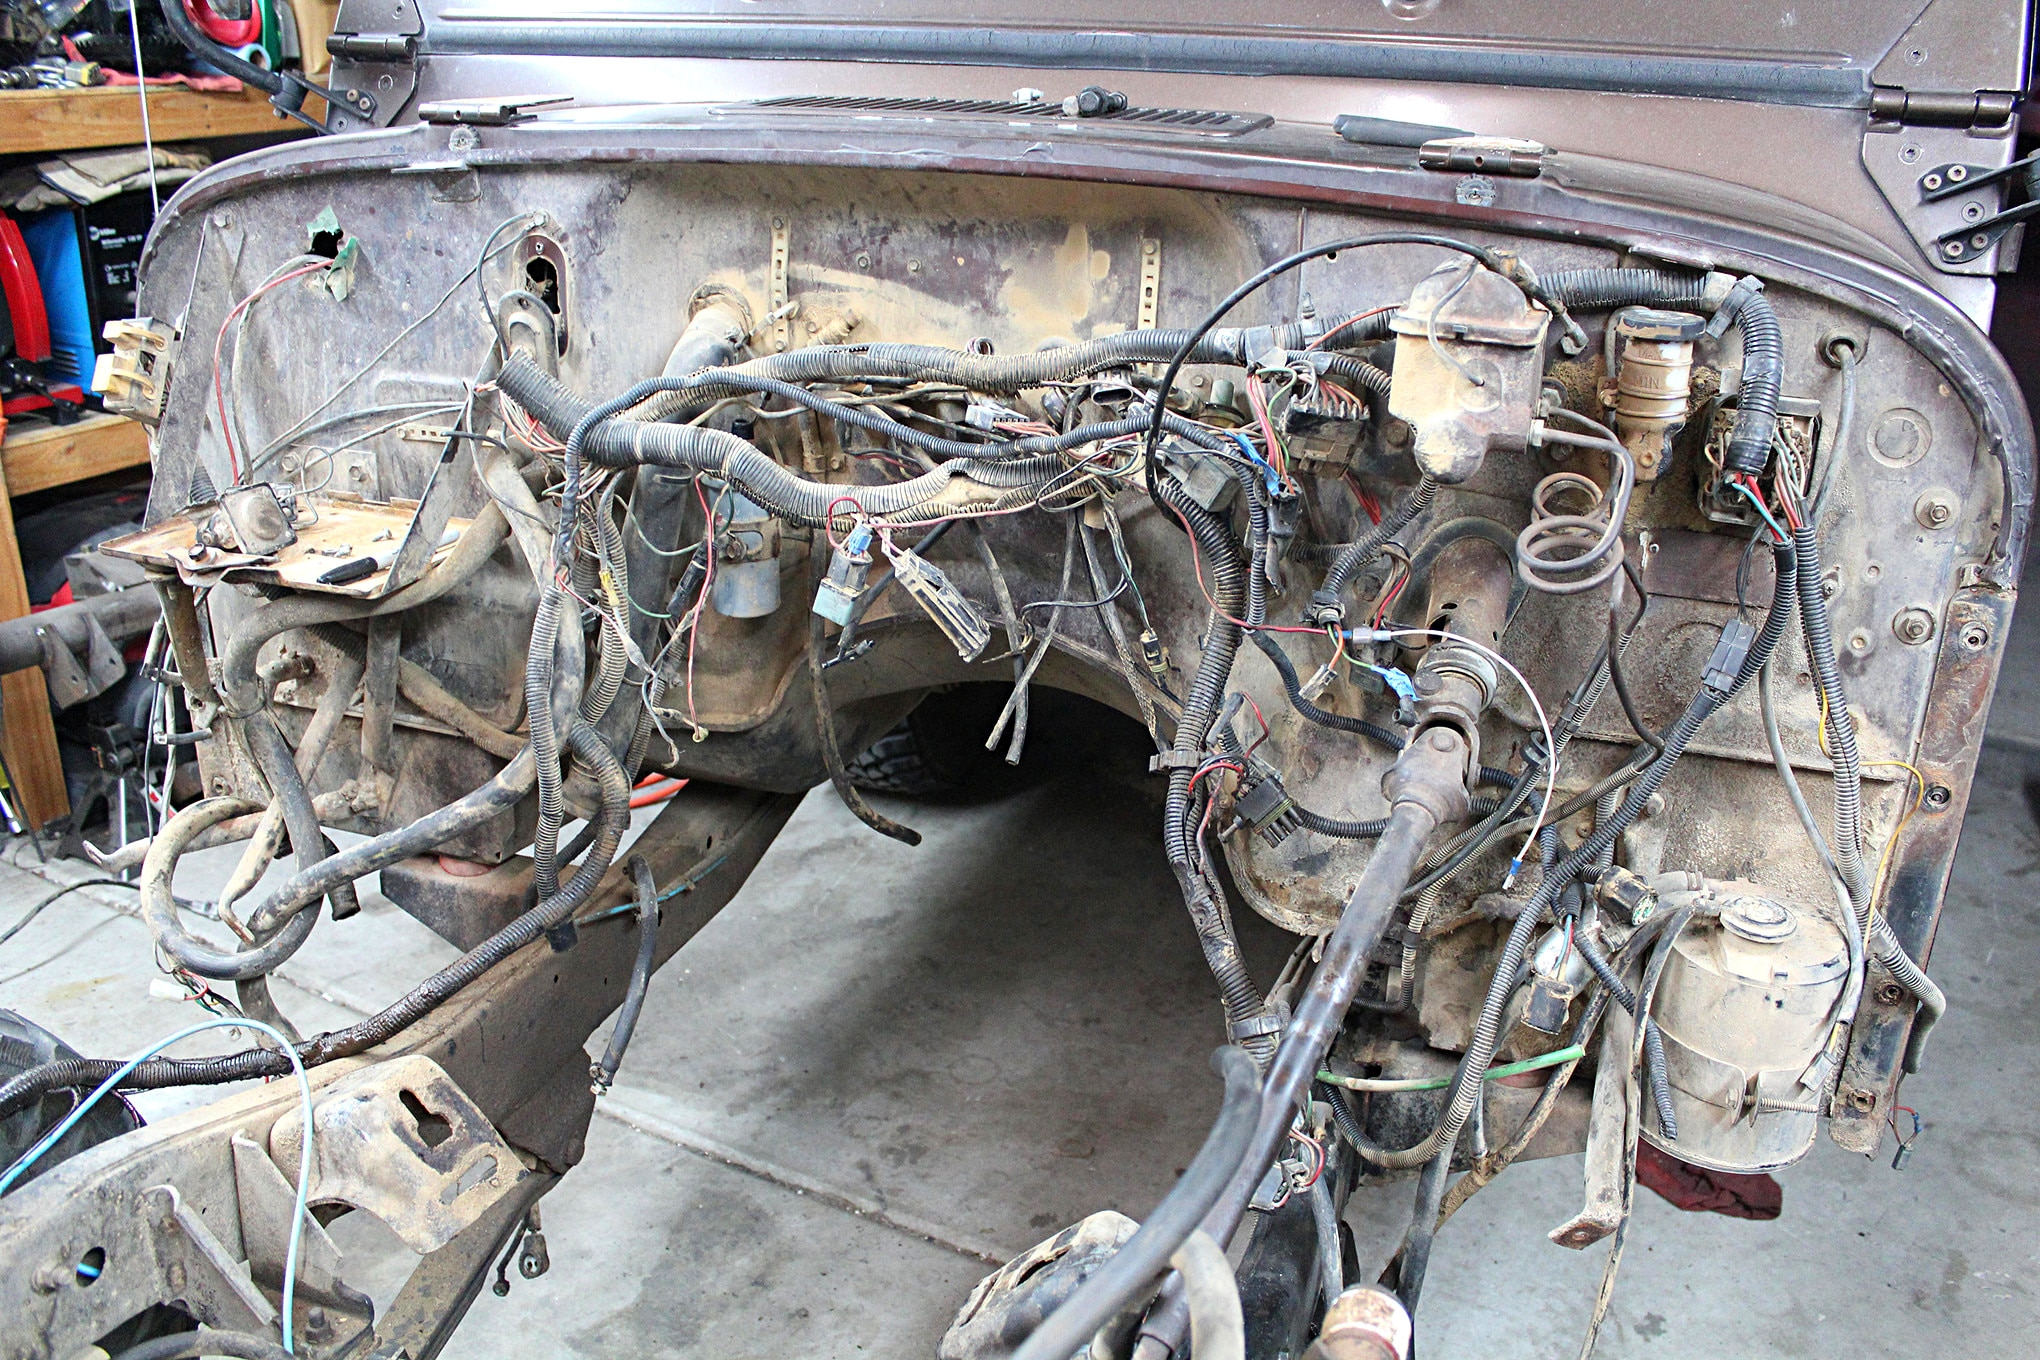 jeep cj v8 swap wiring schema wiring diagram jeep cj v8 swap wiring [ 2040 x 1360 Pixel ]